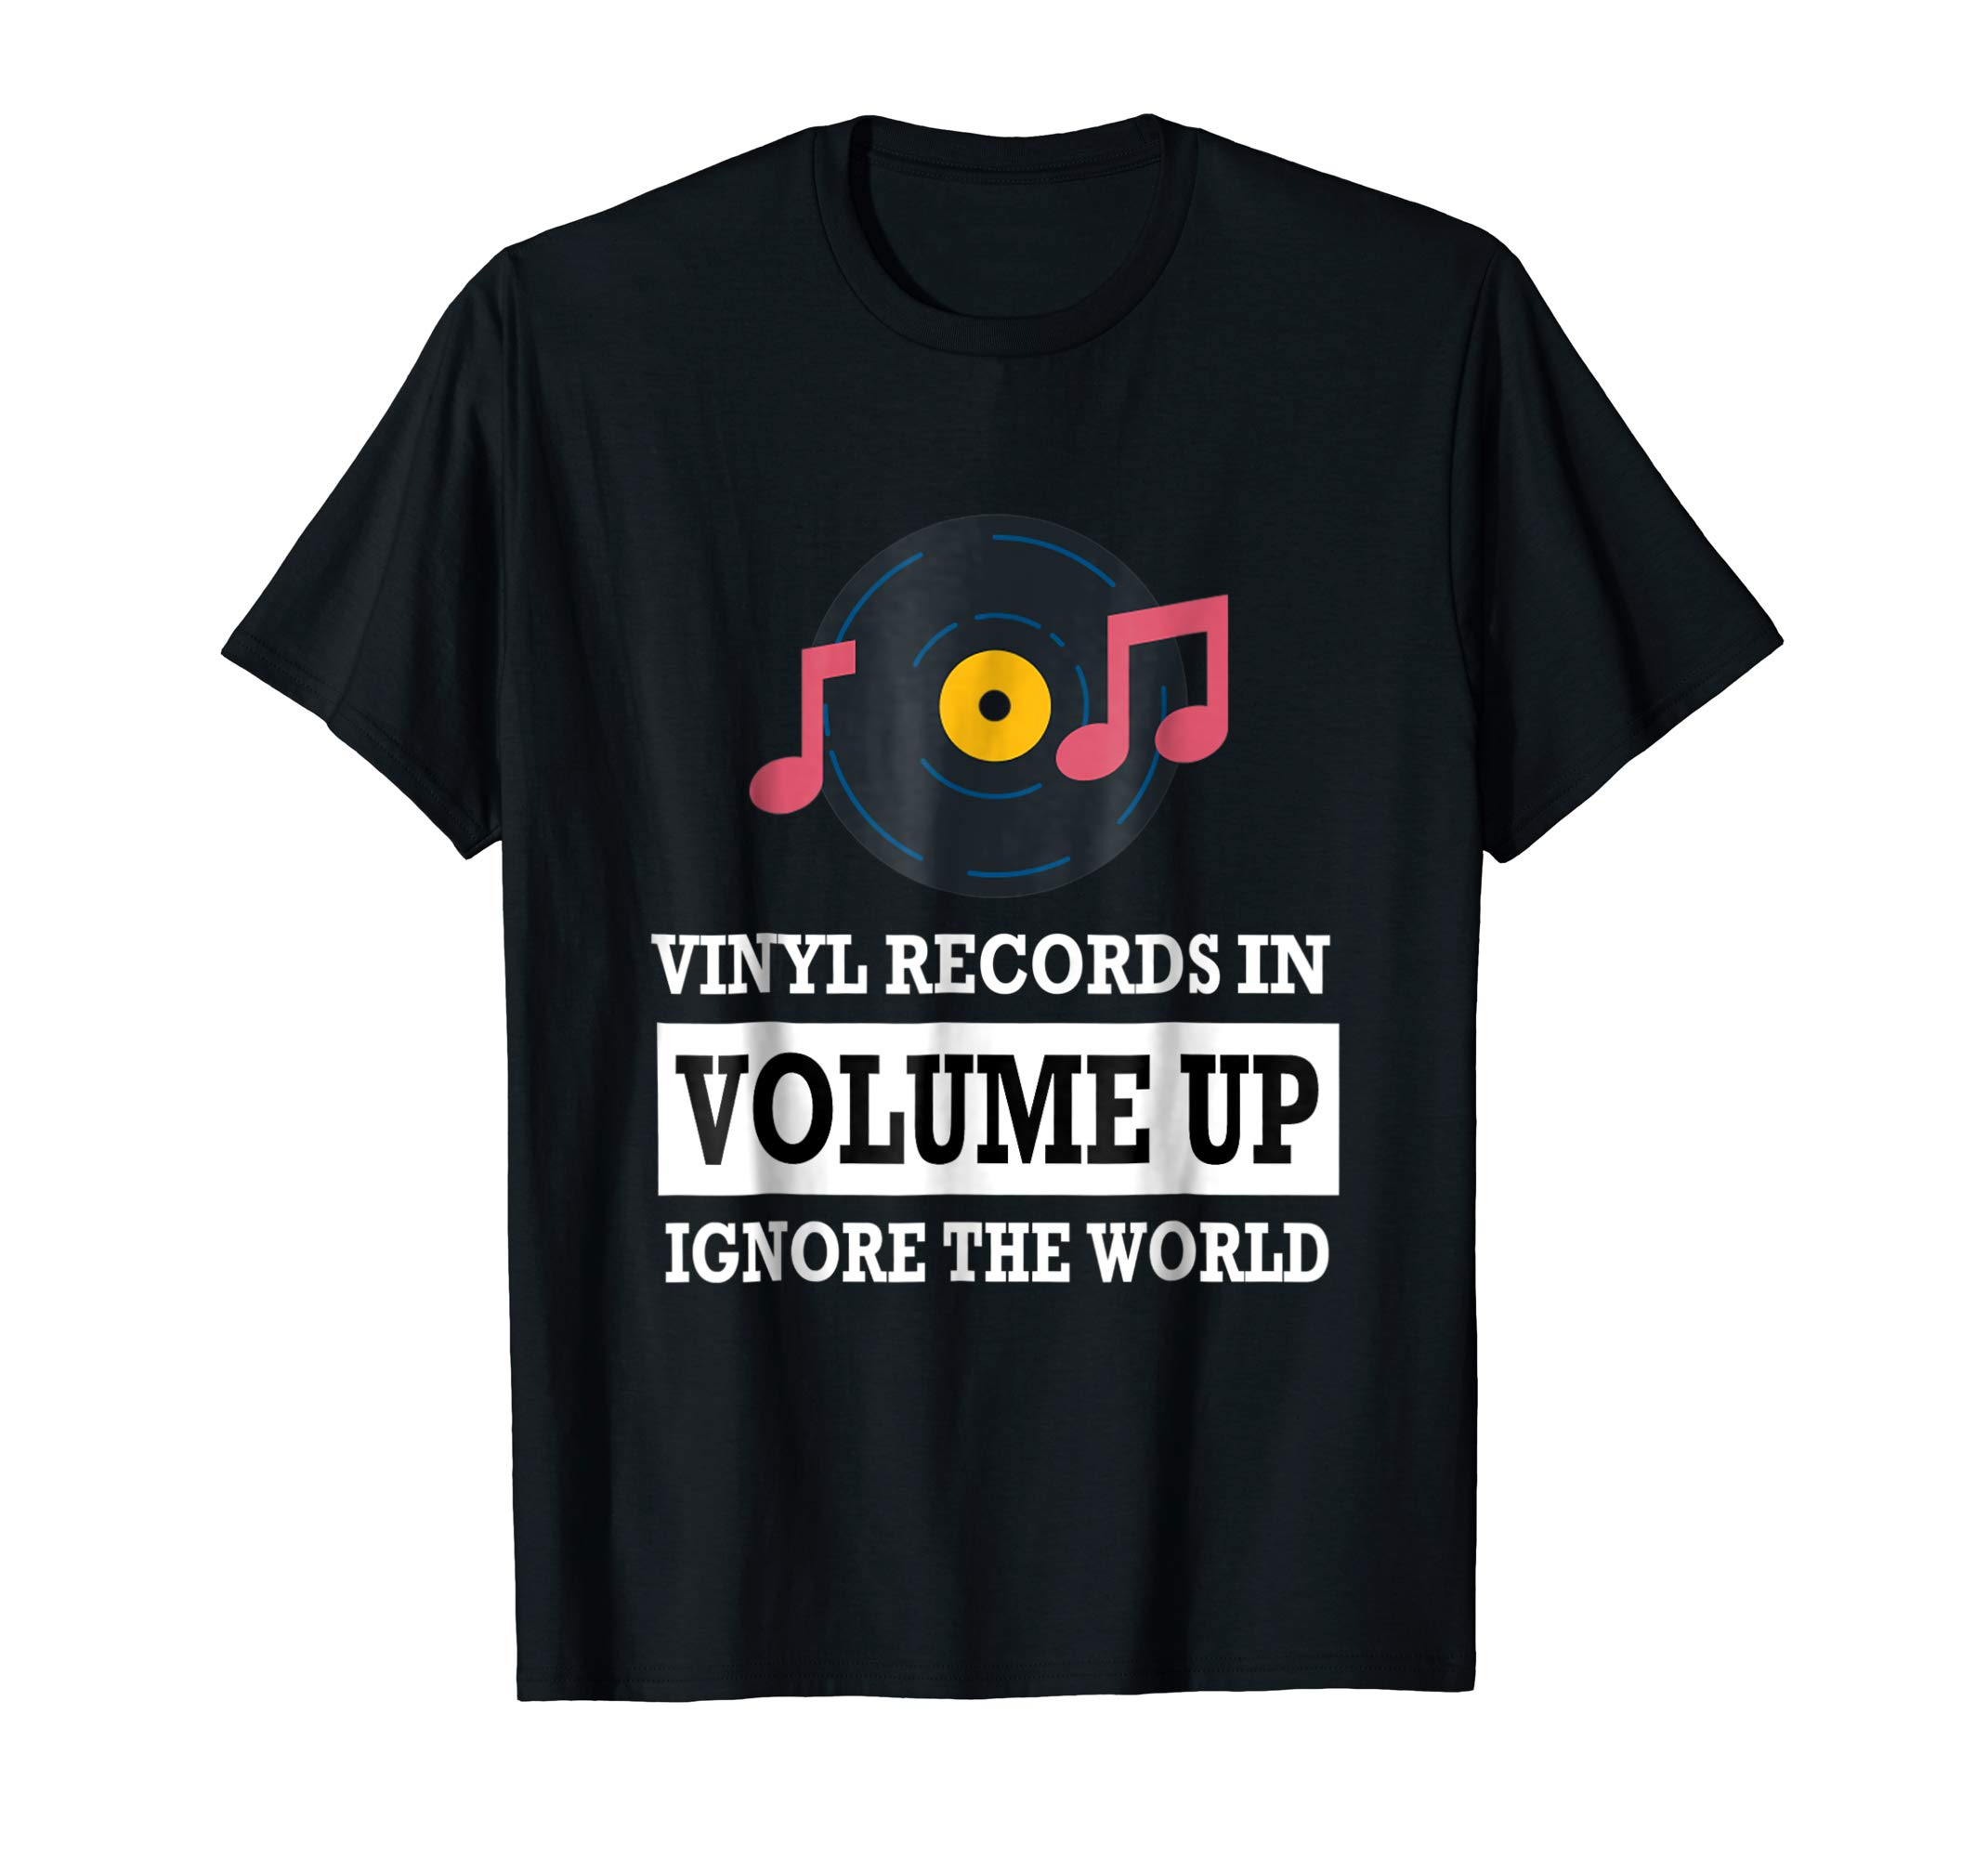 Vinyl Records In Volume Up Ignore The World T-shirt.